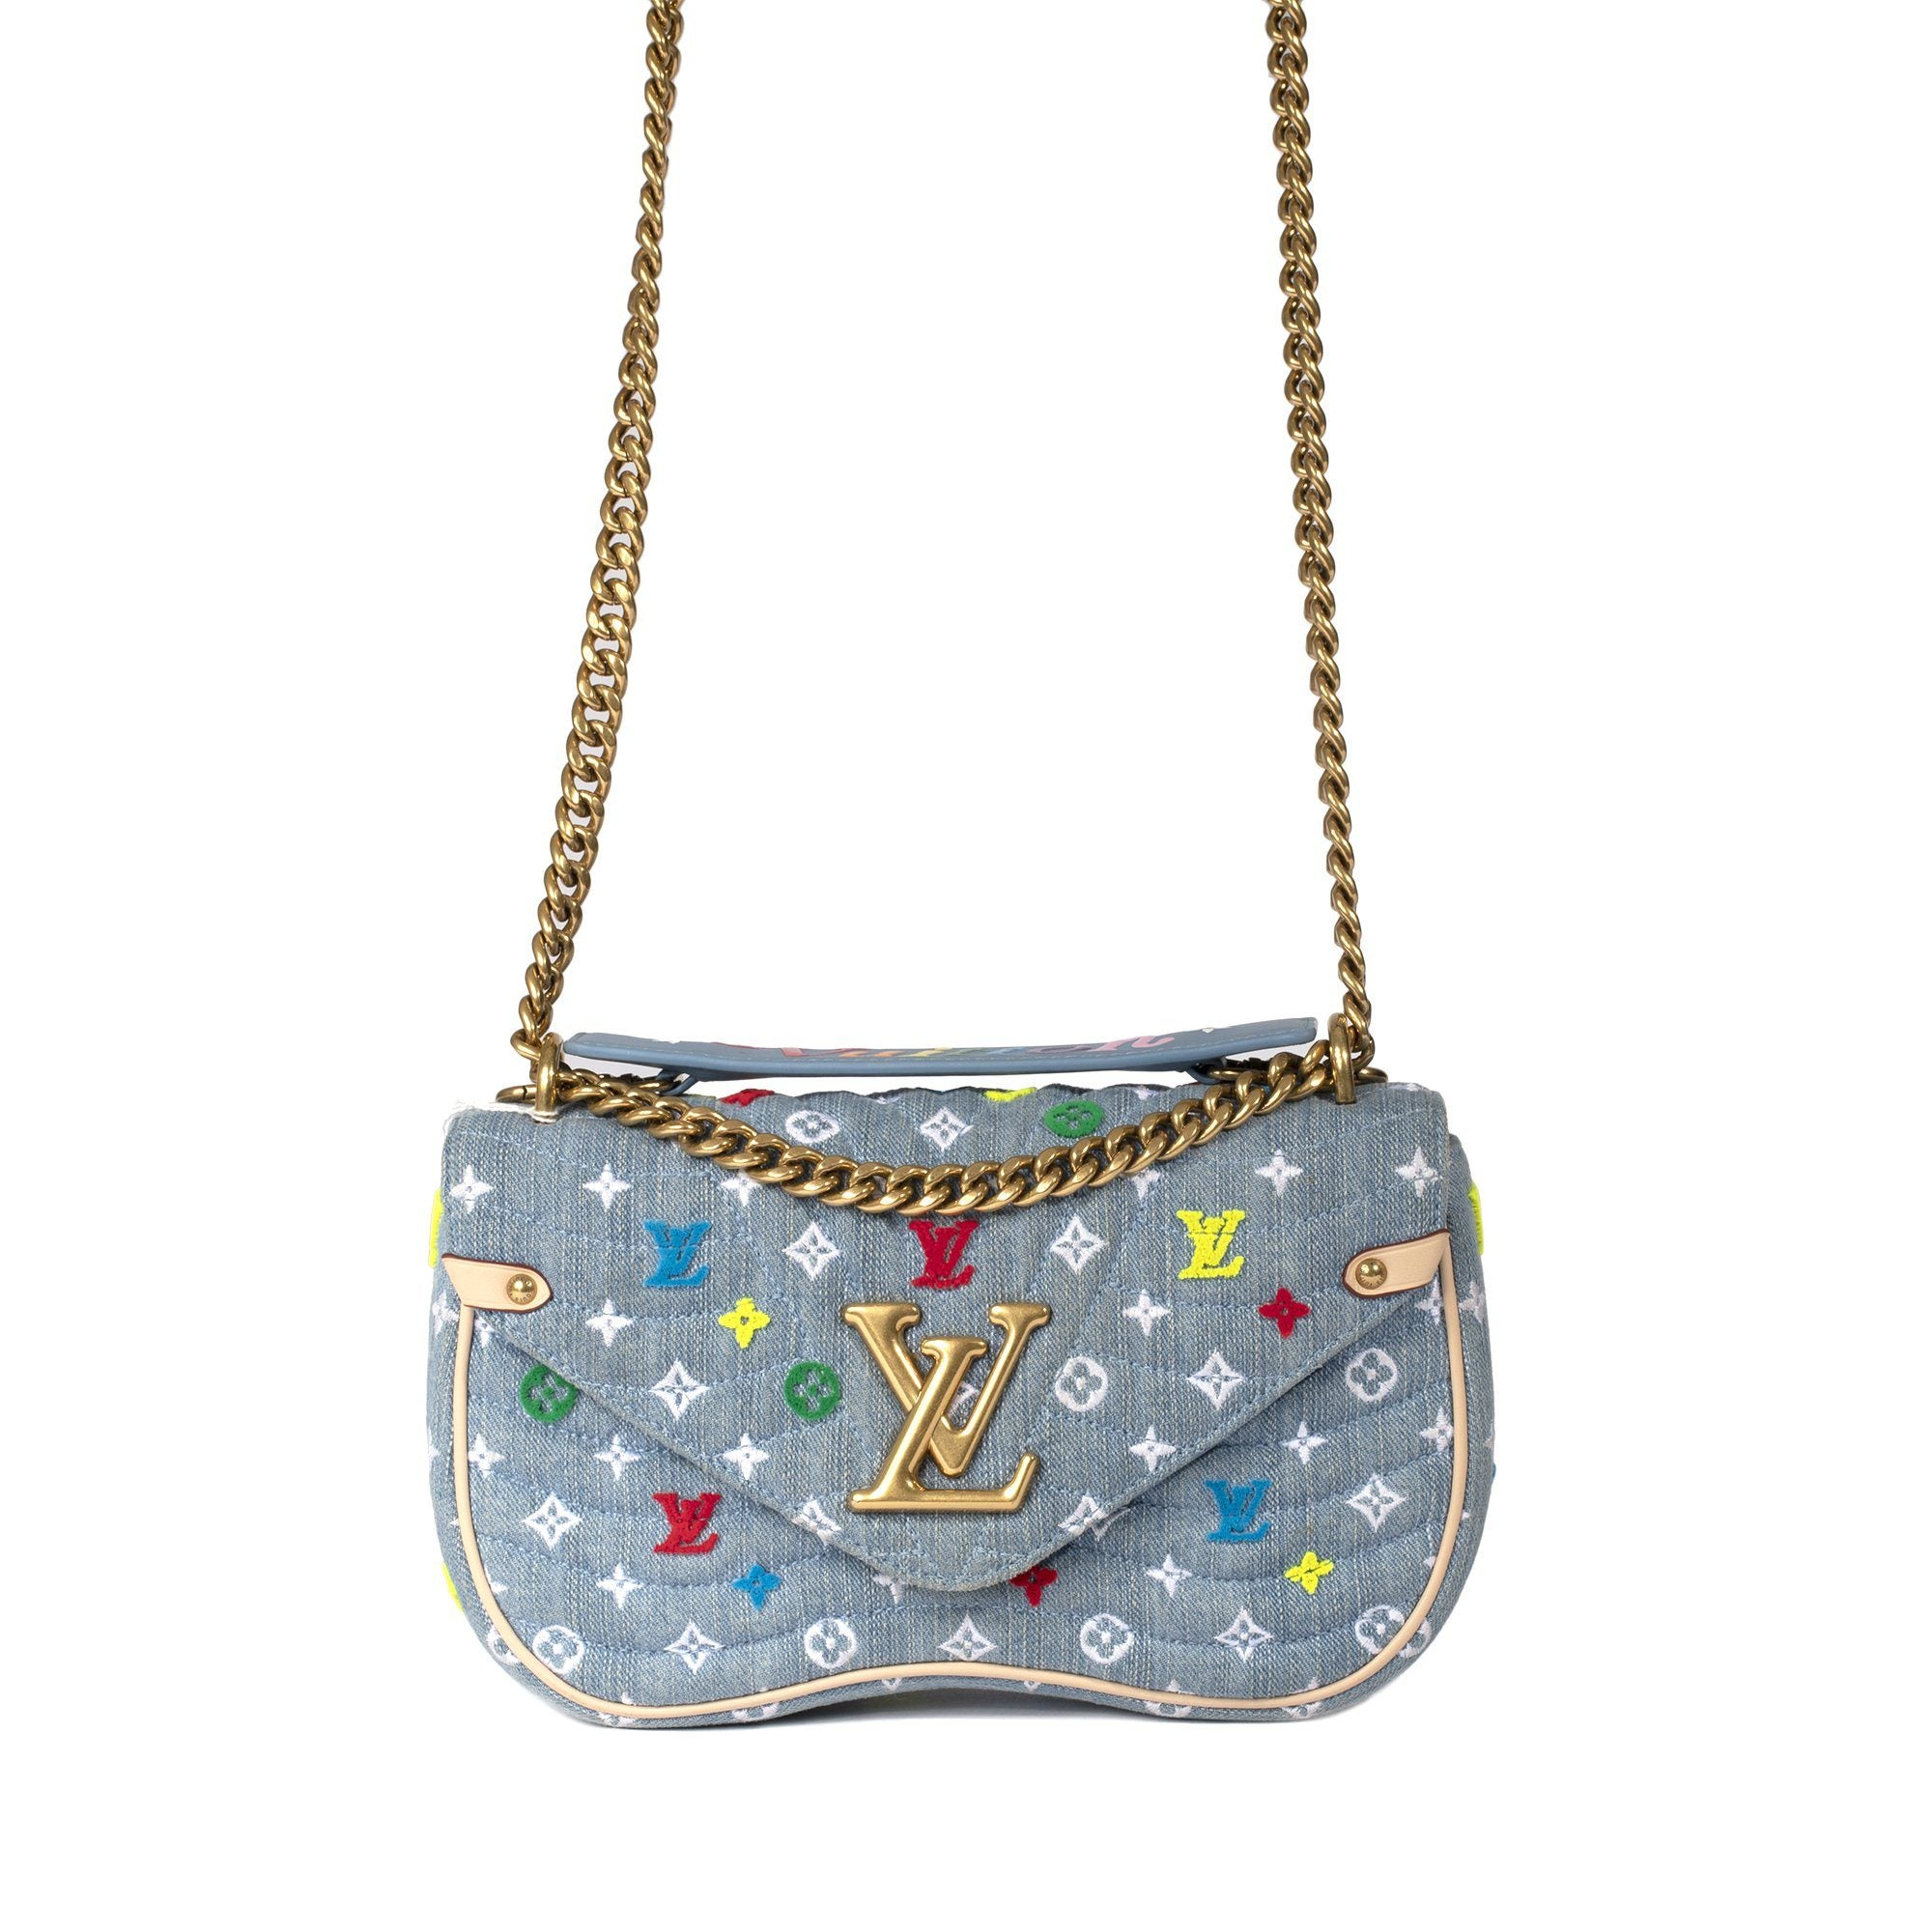 100% authentic first rate great variety models Louis Vuitton 2019 New Wave Chain-Bag MM